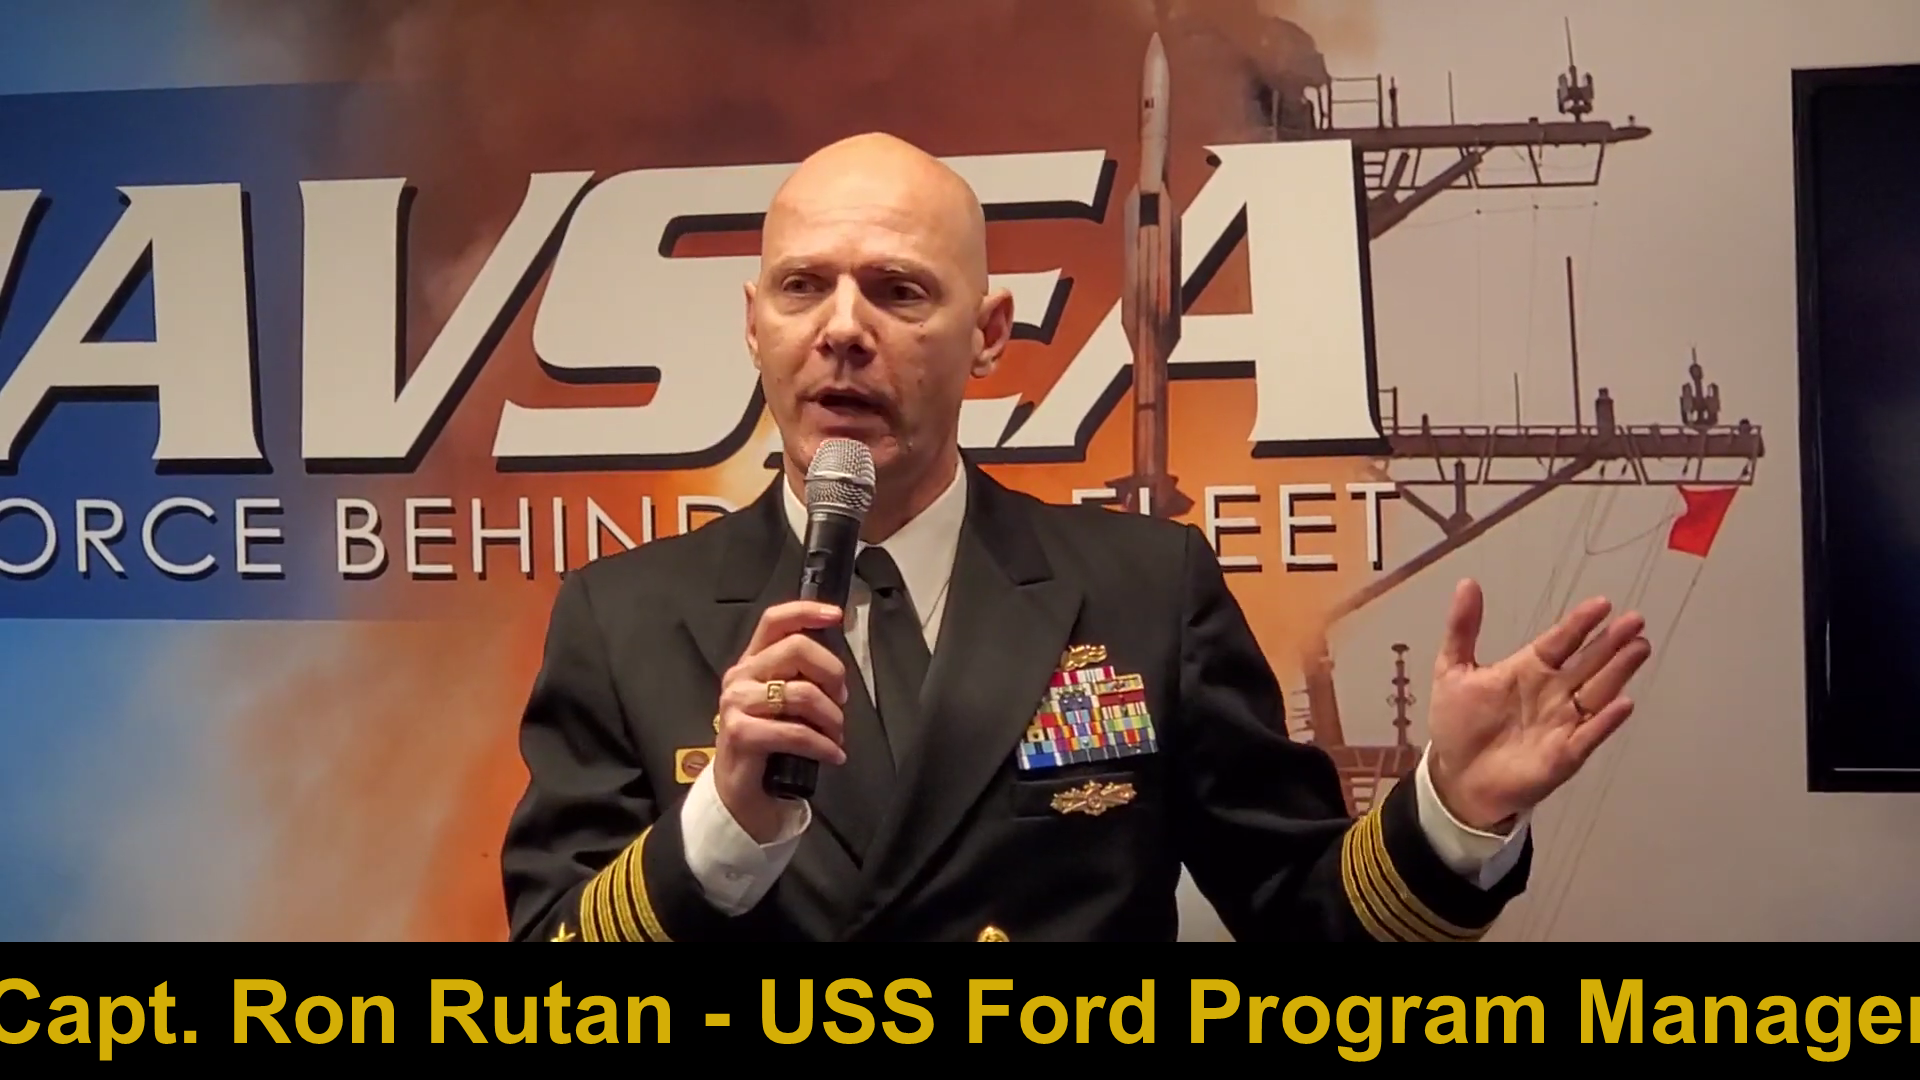 Video: Navy Capt. Describes High-Speed Attacks on USS Ford